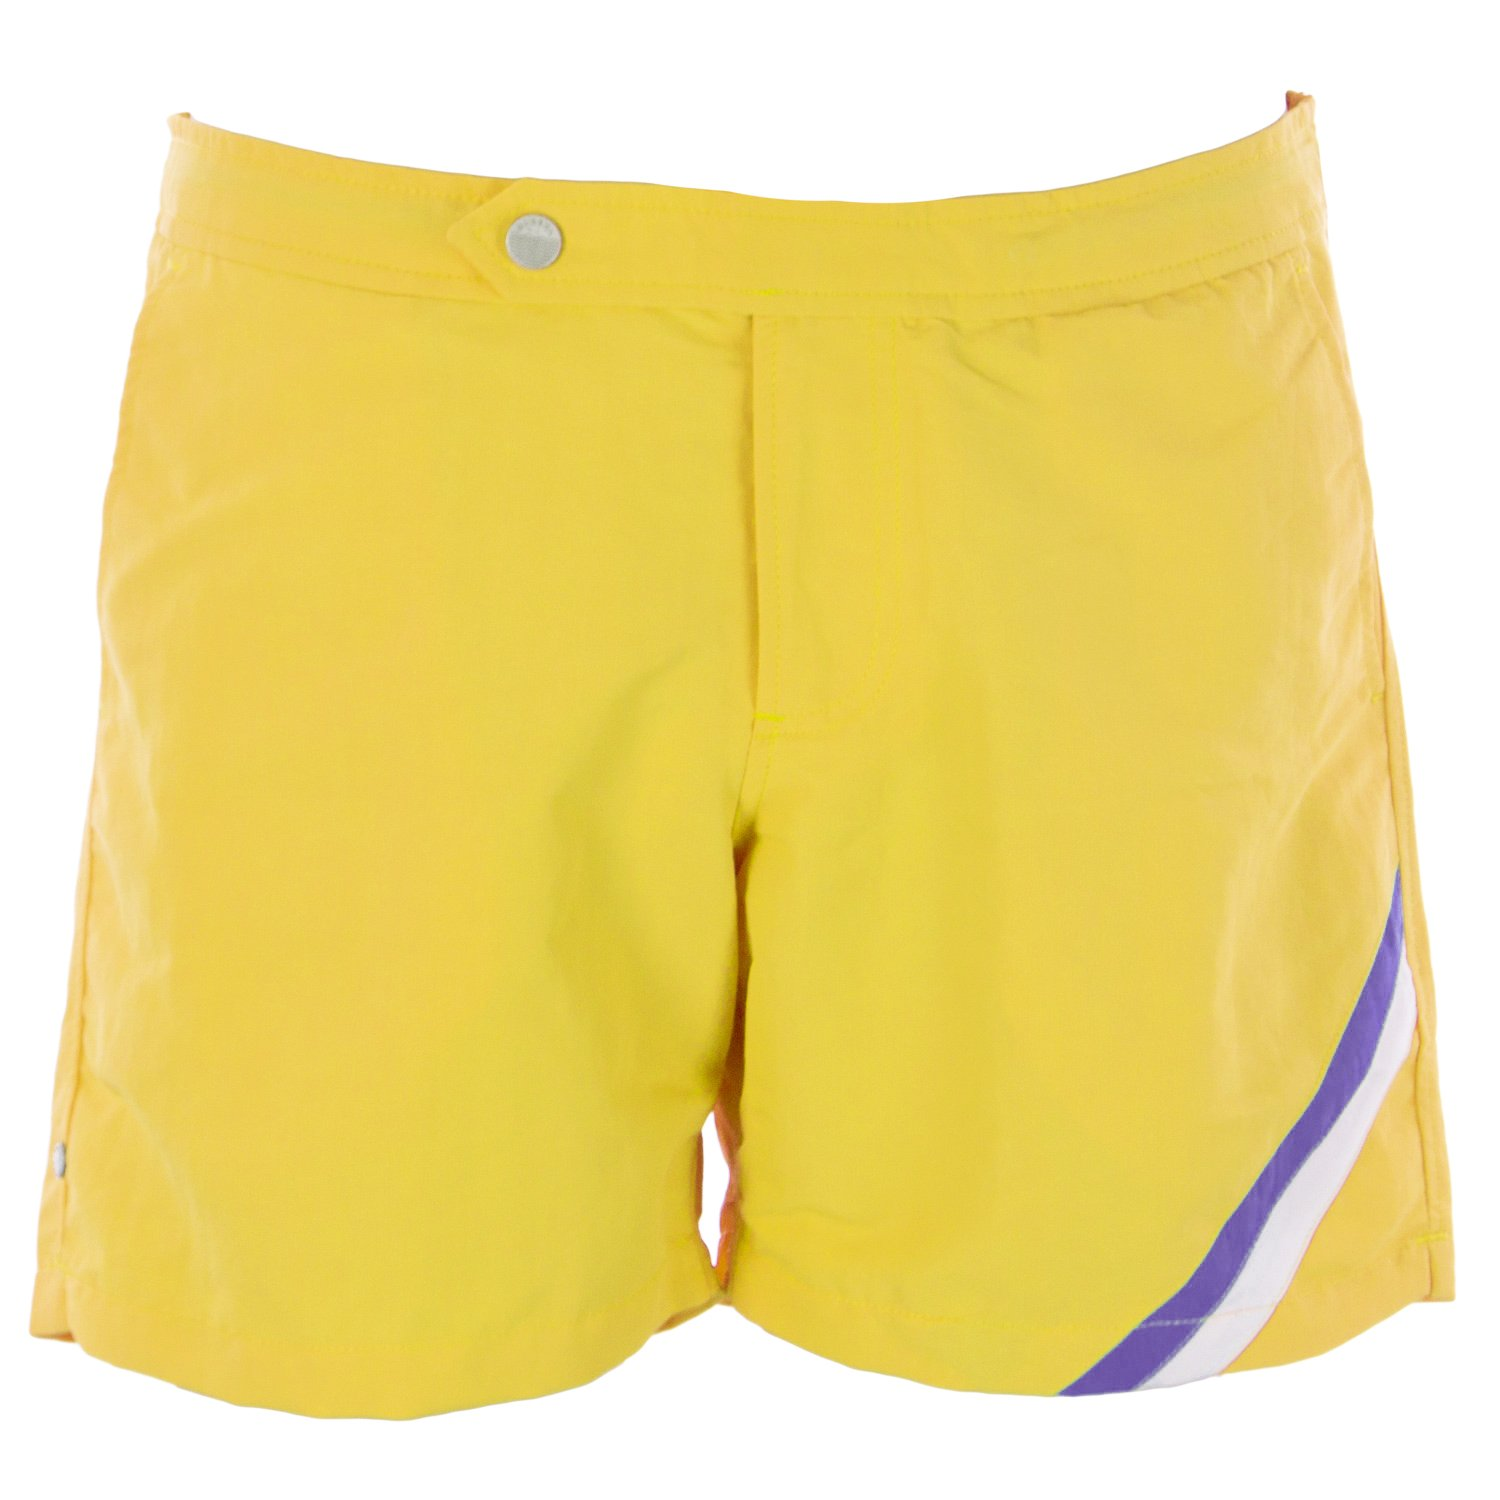 Olasul Men's 6'' Solid Swim Trunks 38 Yellow